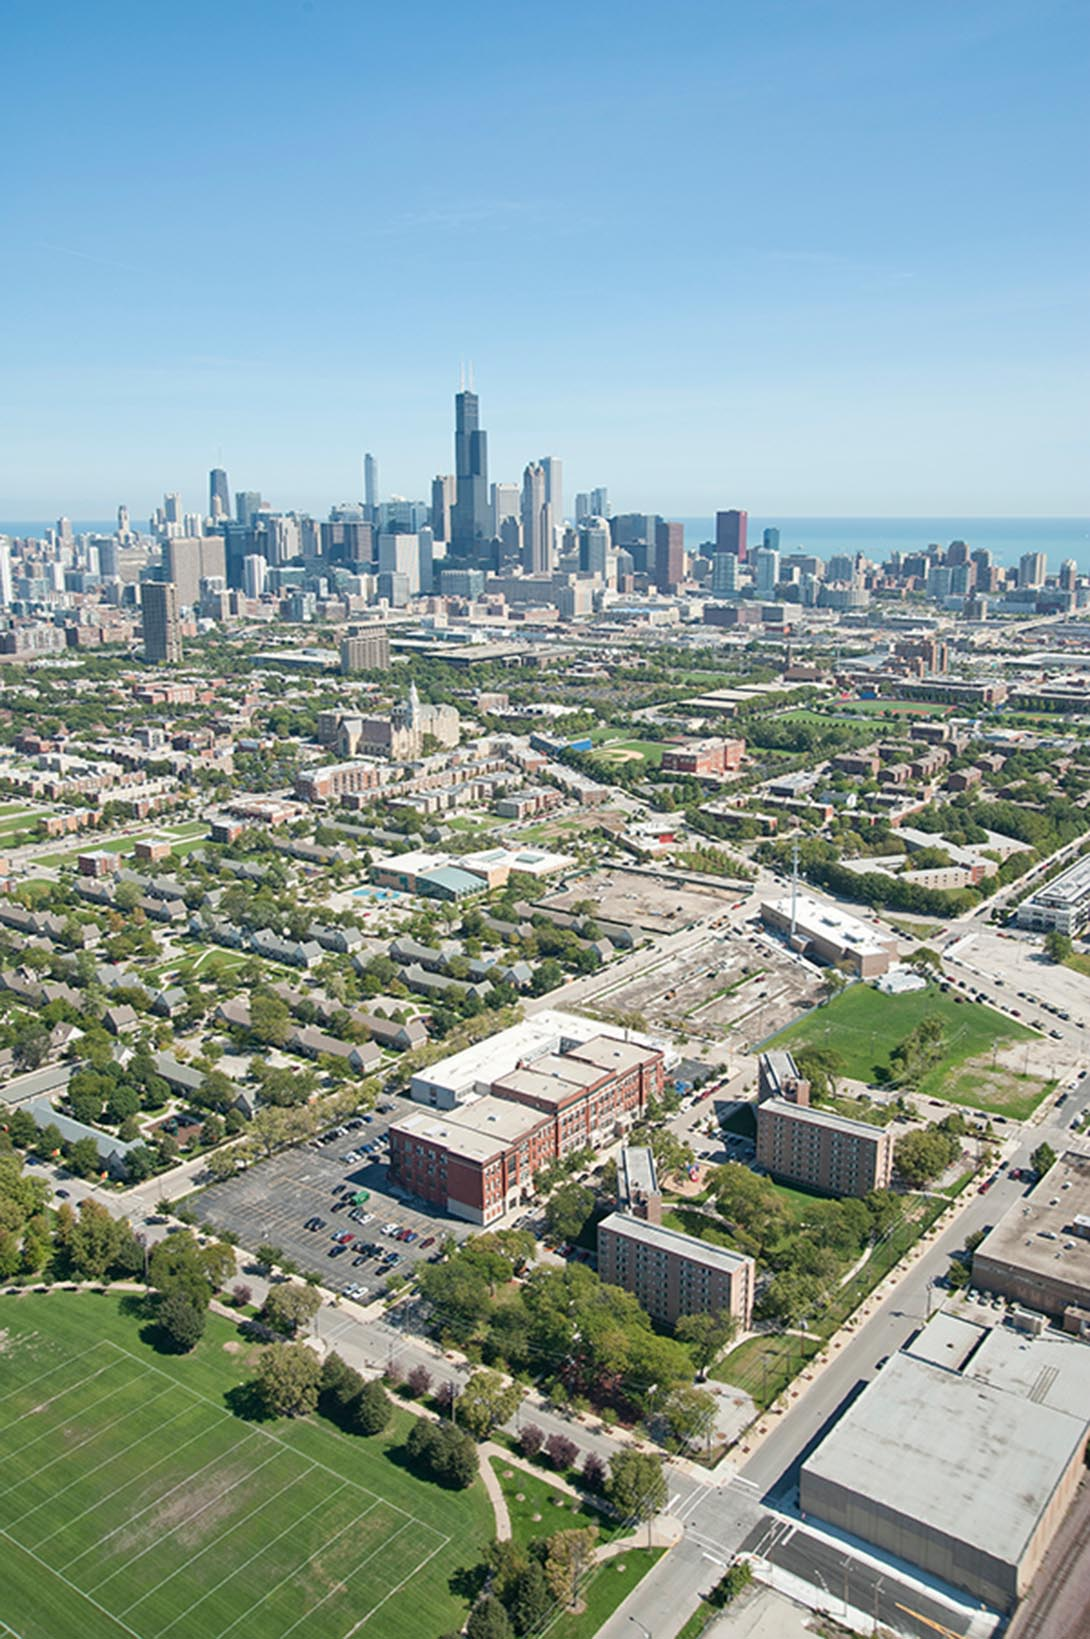 Long view of Chicago downtown including neighborhoods